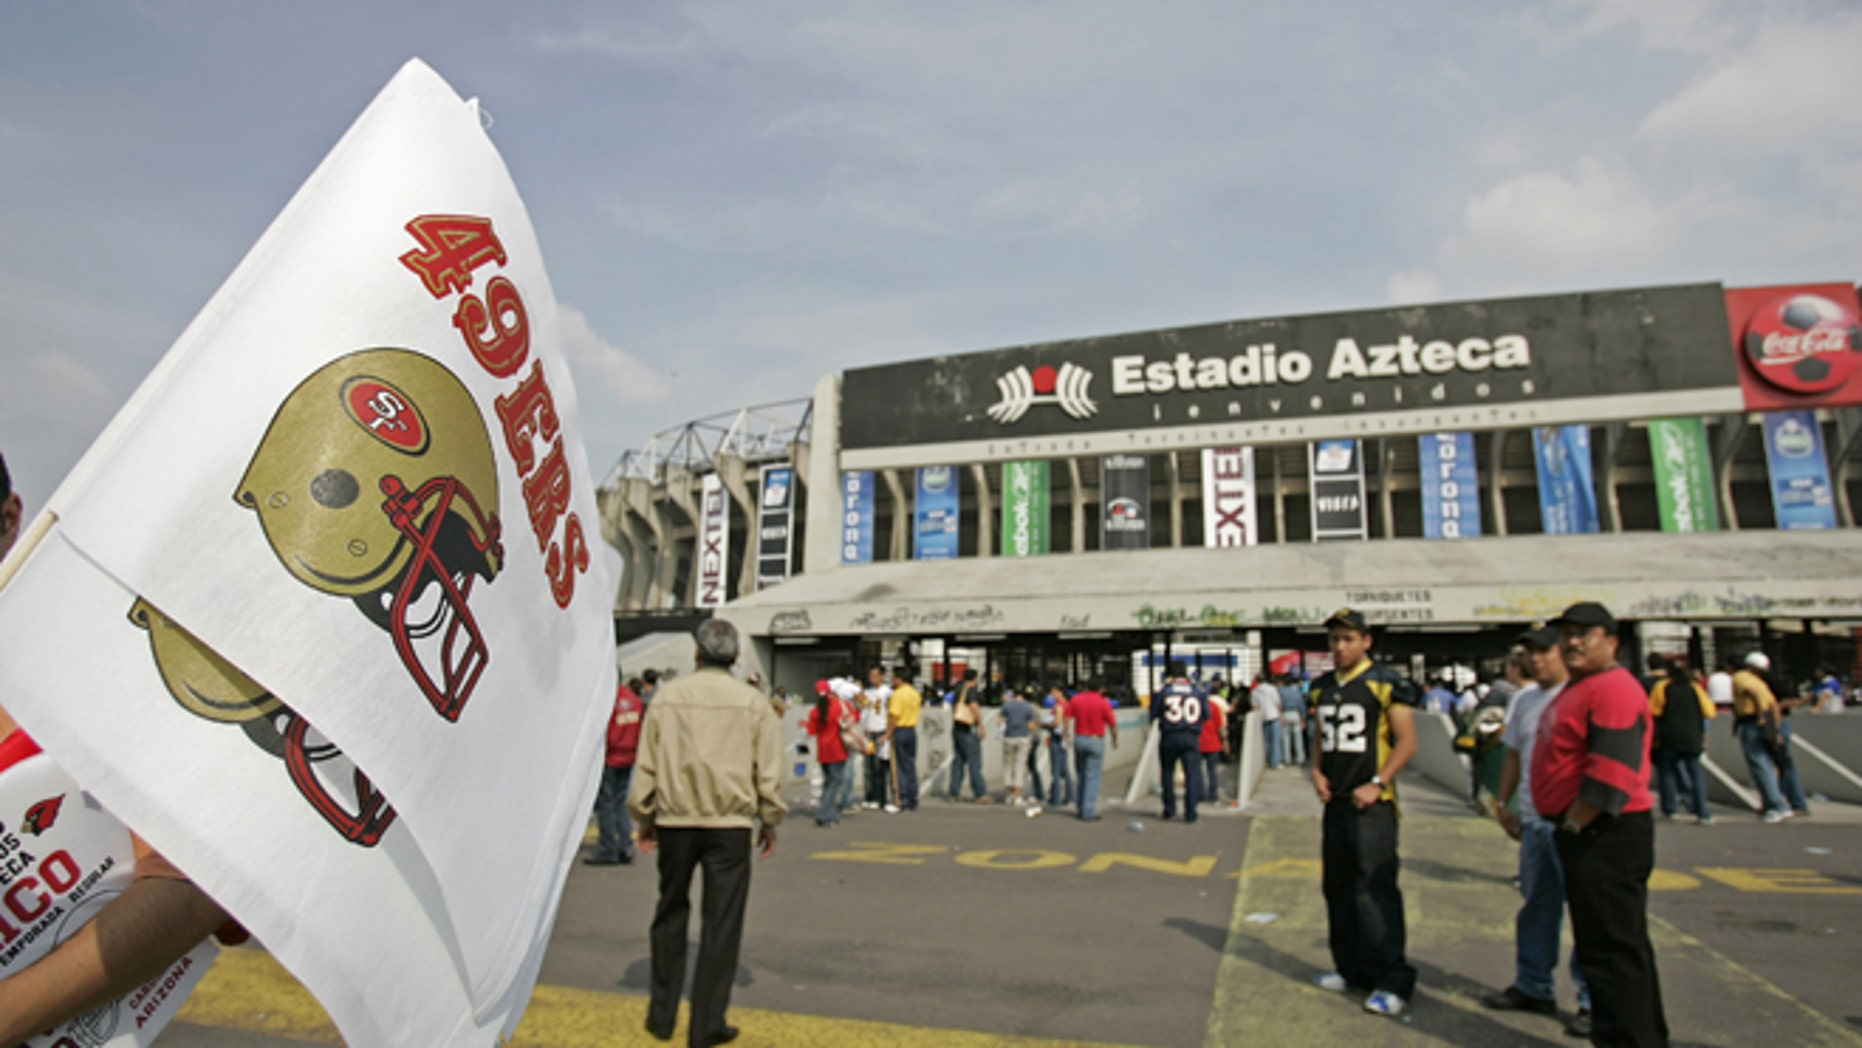 MEXICO CITY - OCTOBER 2:  Estadio Azteca stadium before a regular season NFL game between the Arizona Cardinals and the San Francisco 49ers at Estadio Azteca in Mexico City, Mexico on October 2, 2005. This is the first ever regular season game being played outside the United States. (Photo by Mike Ehrmann/Getty Images) *** Local Caption ***